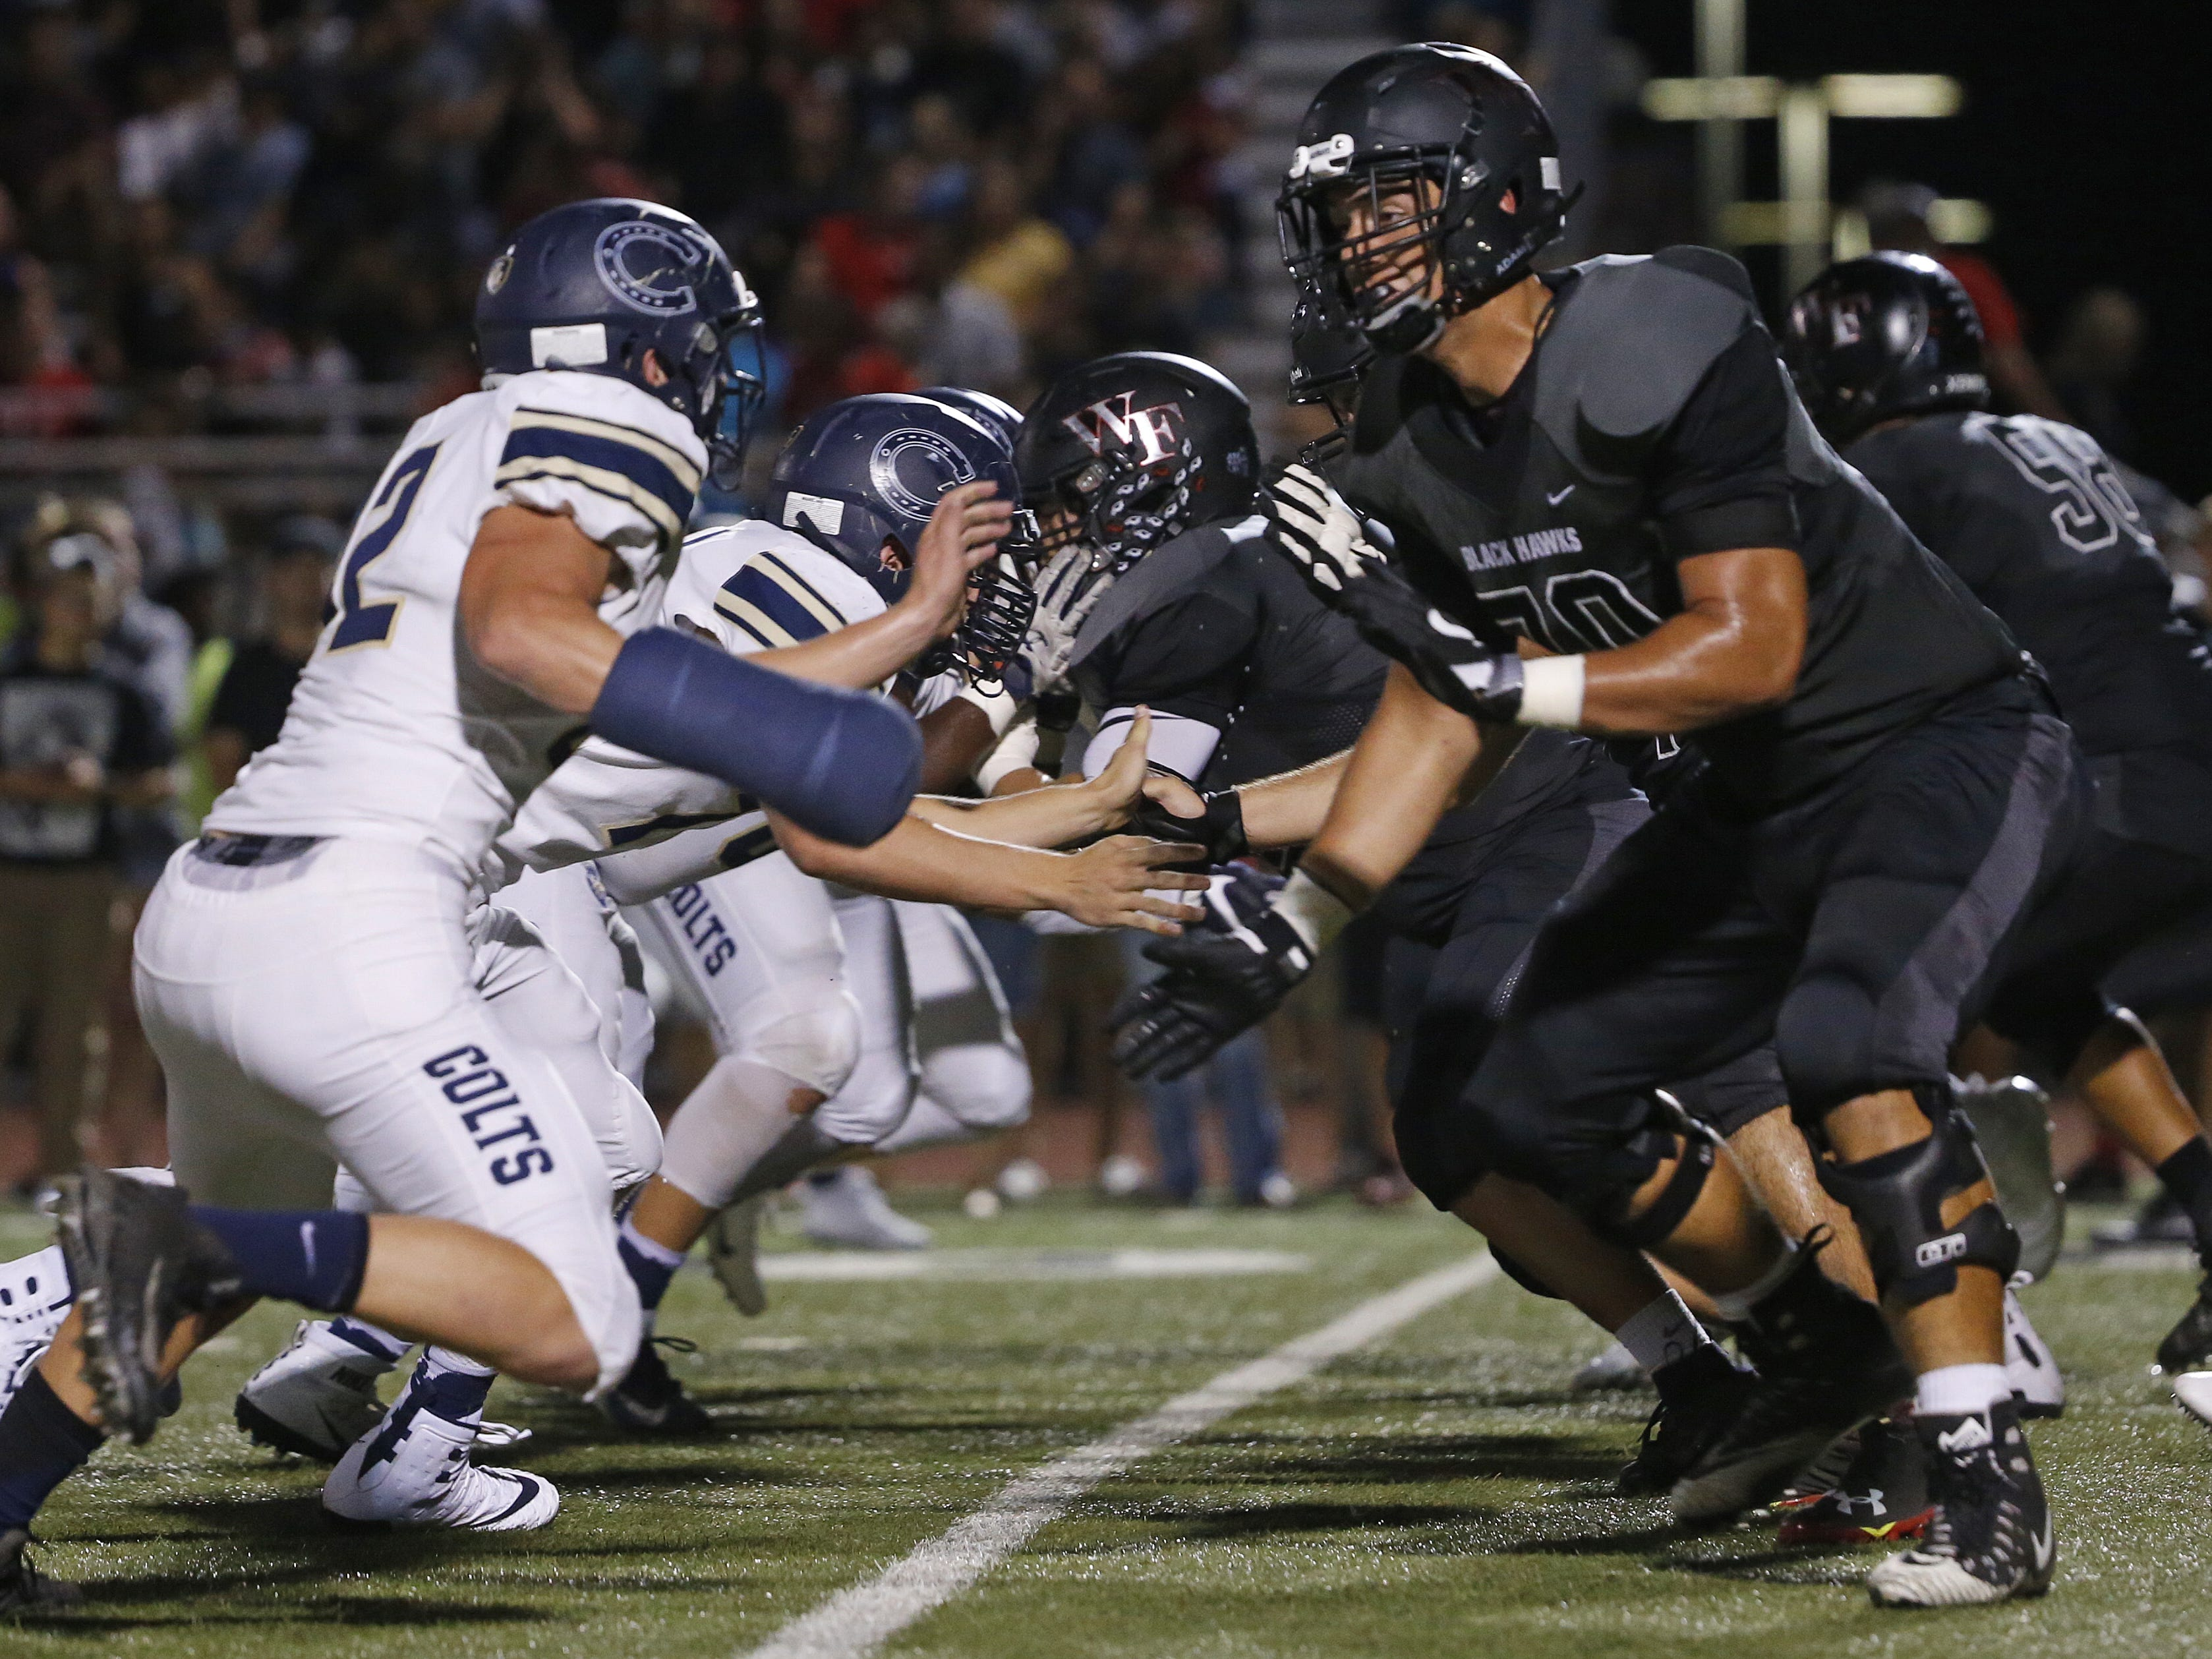 Williams Field's Noah Nelson (70) blocks Casteel's Cruz Webster (42) at Williams Field High School in Gilbert, Ariz. on Sept. 21, 2018.  #azhsfb